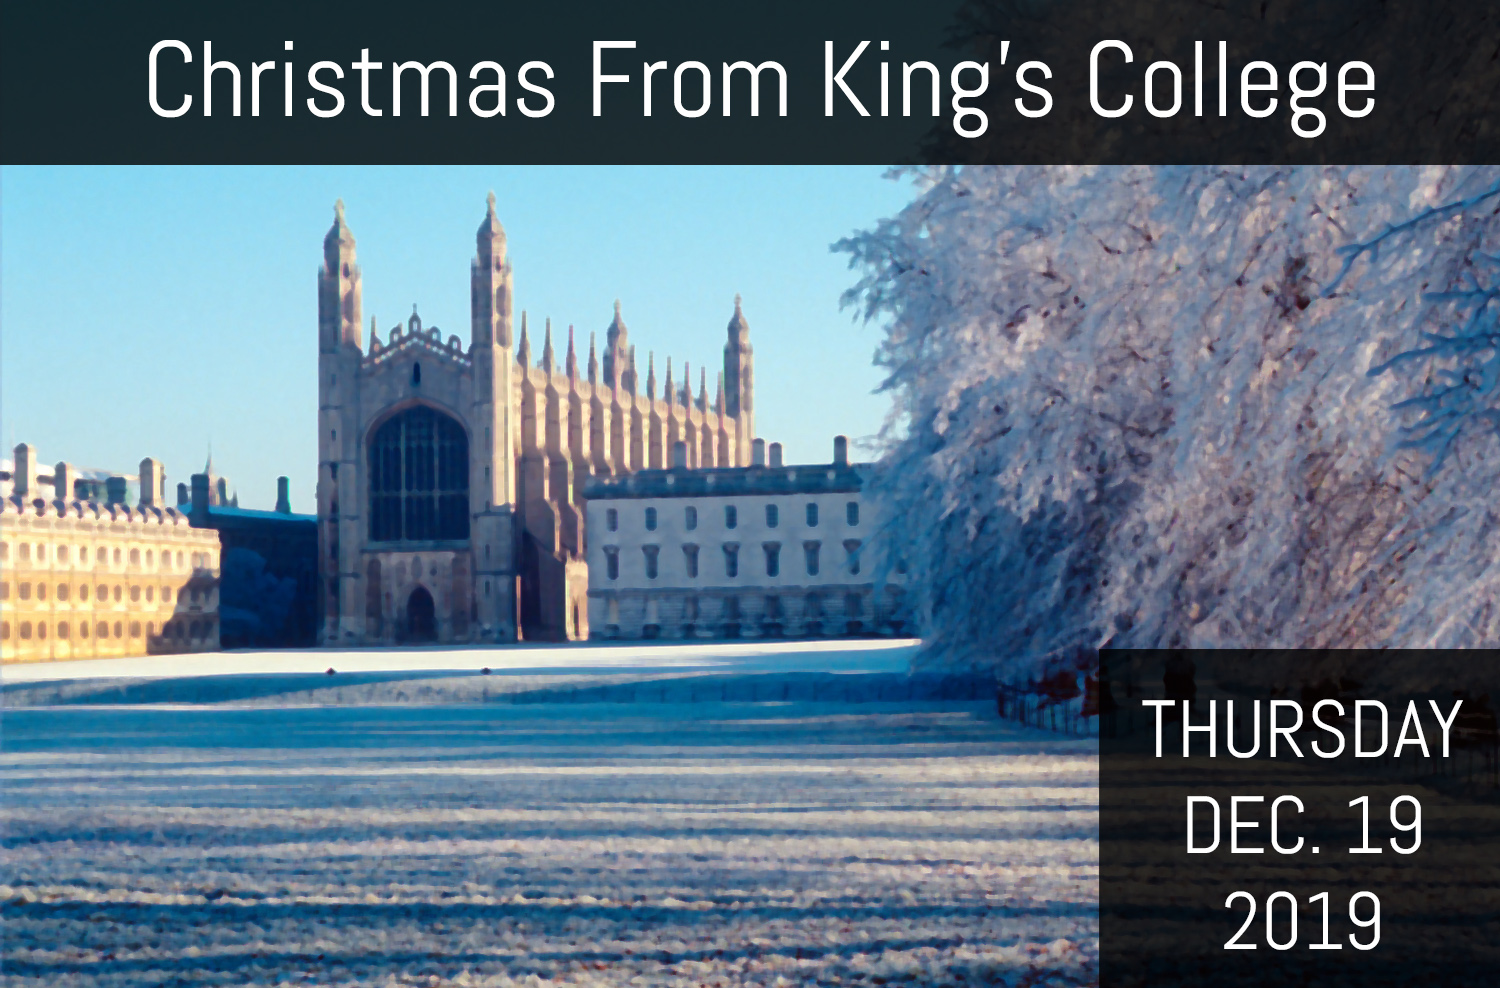 Kings_College_Choir_Dec19.jpg